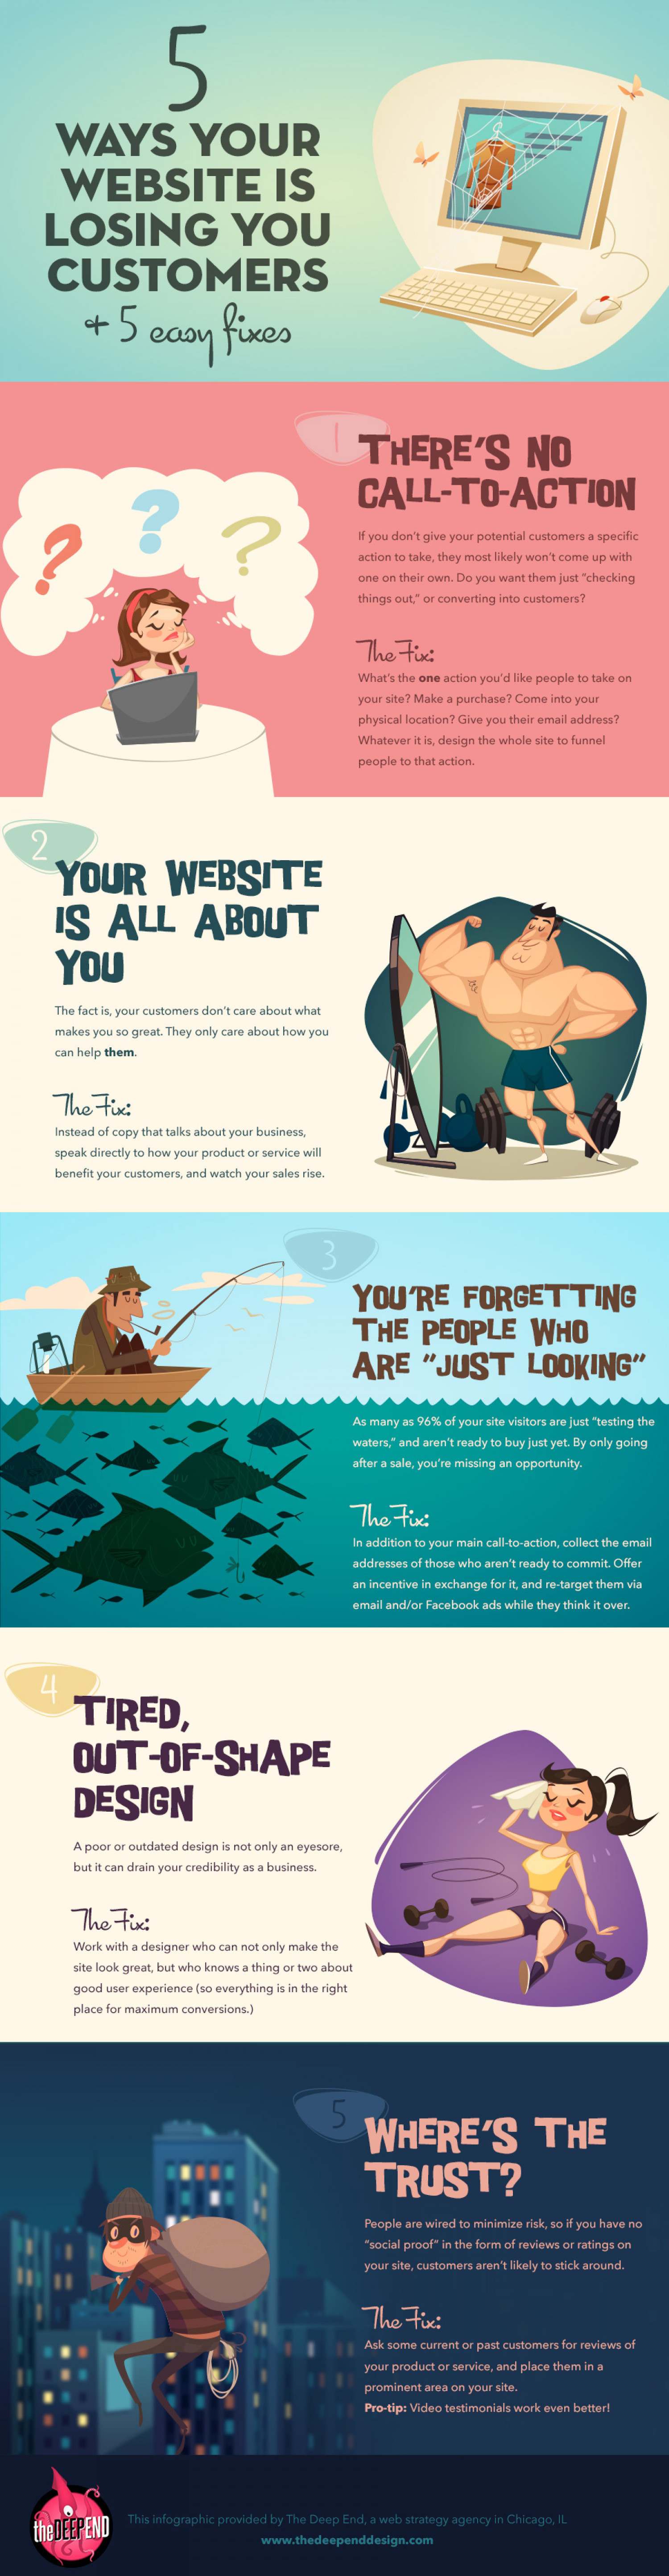 5 Ways Your Website is Losing You Customers (and 5 Easy Fixes) Infographic